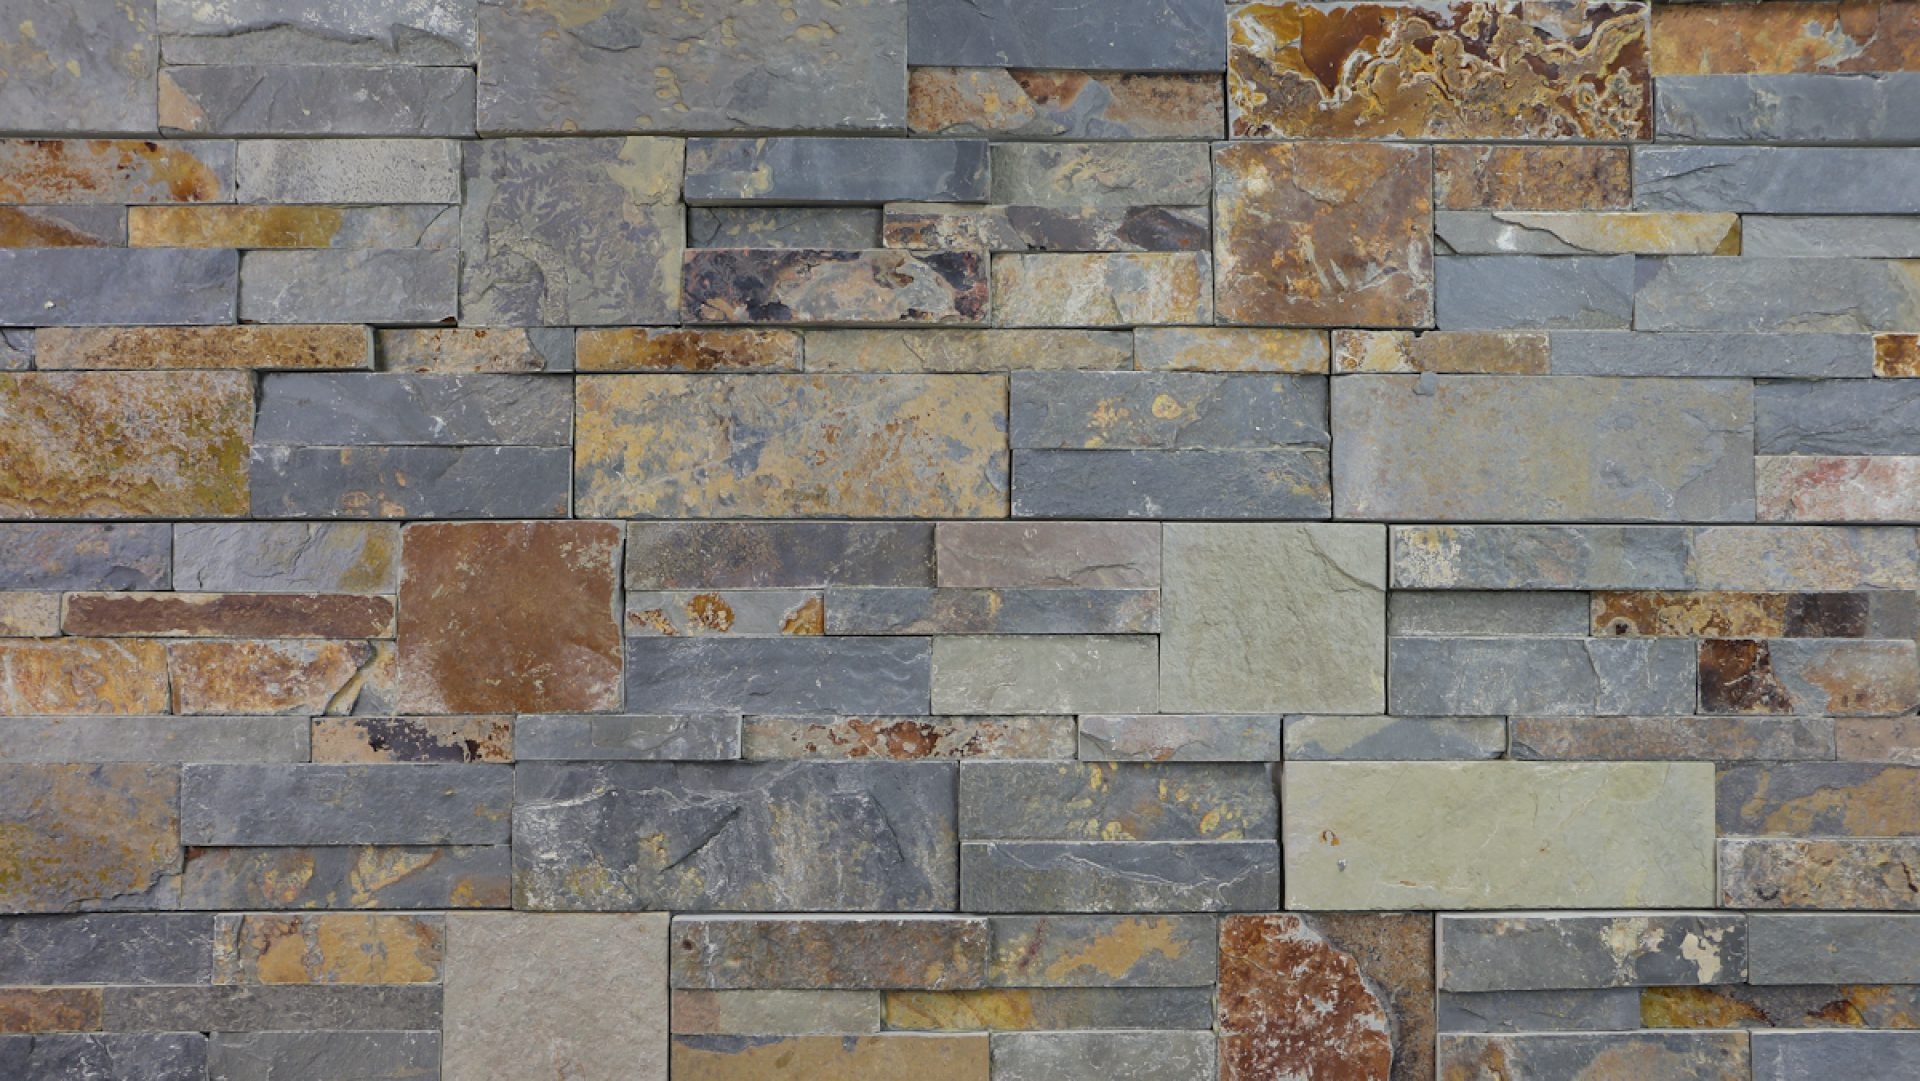 Stonetek Natural Stone | Stacked Stone Veneer, Tiles, Hardscape, Cladding, Marble, Slate, Quartzite, Travertine, Granite, Panels and more.